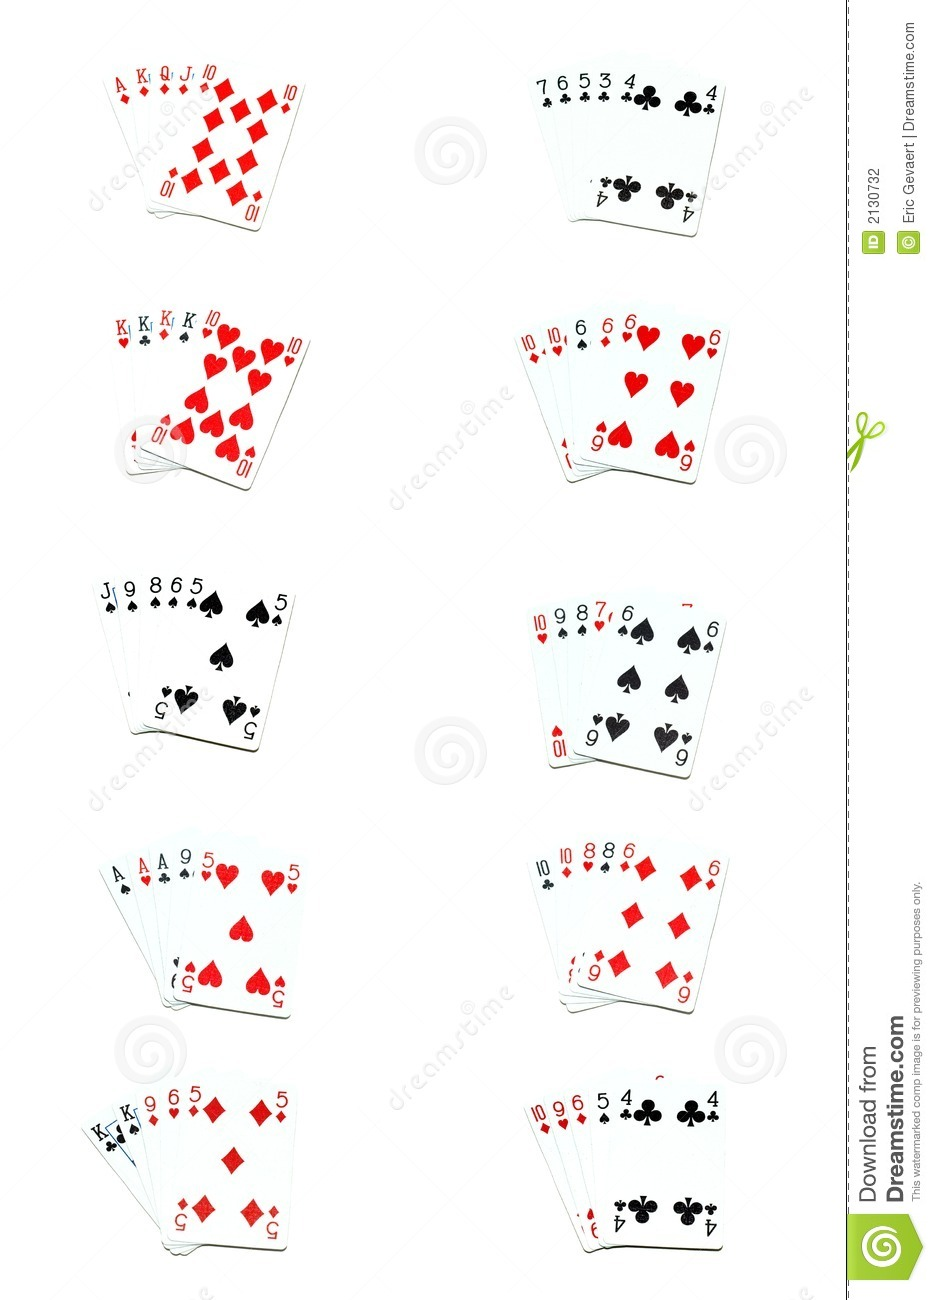 texas holdem poker hands in order